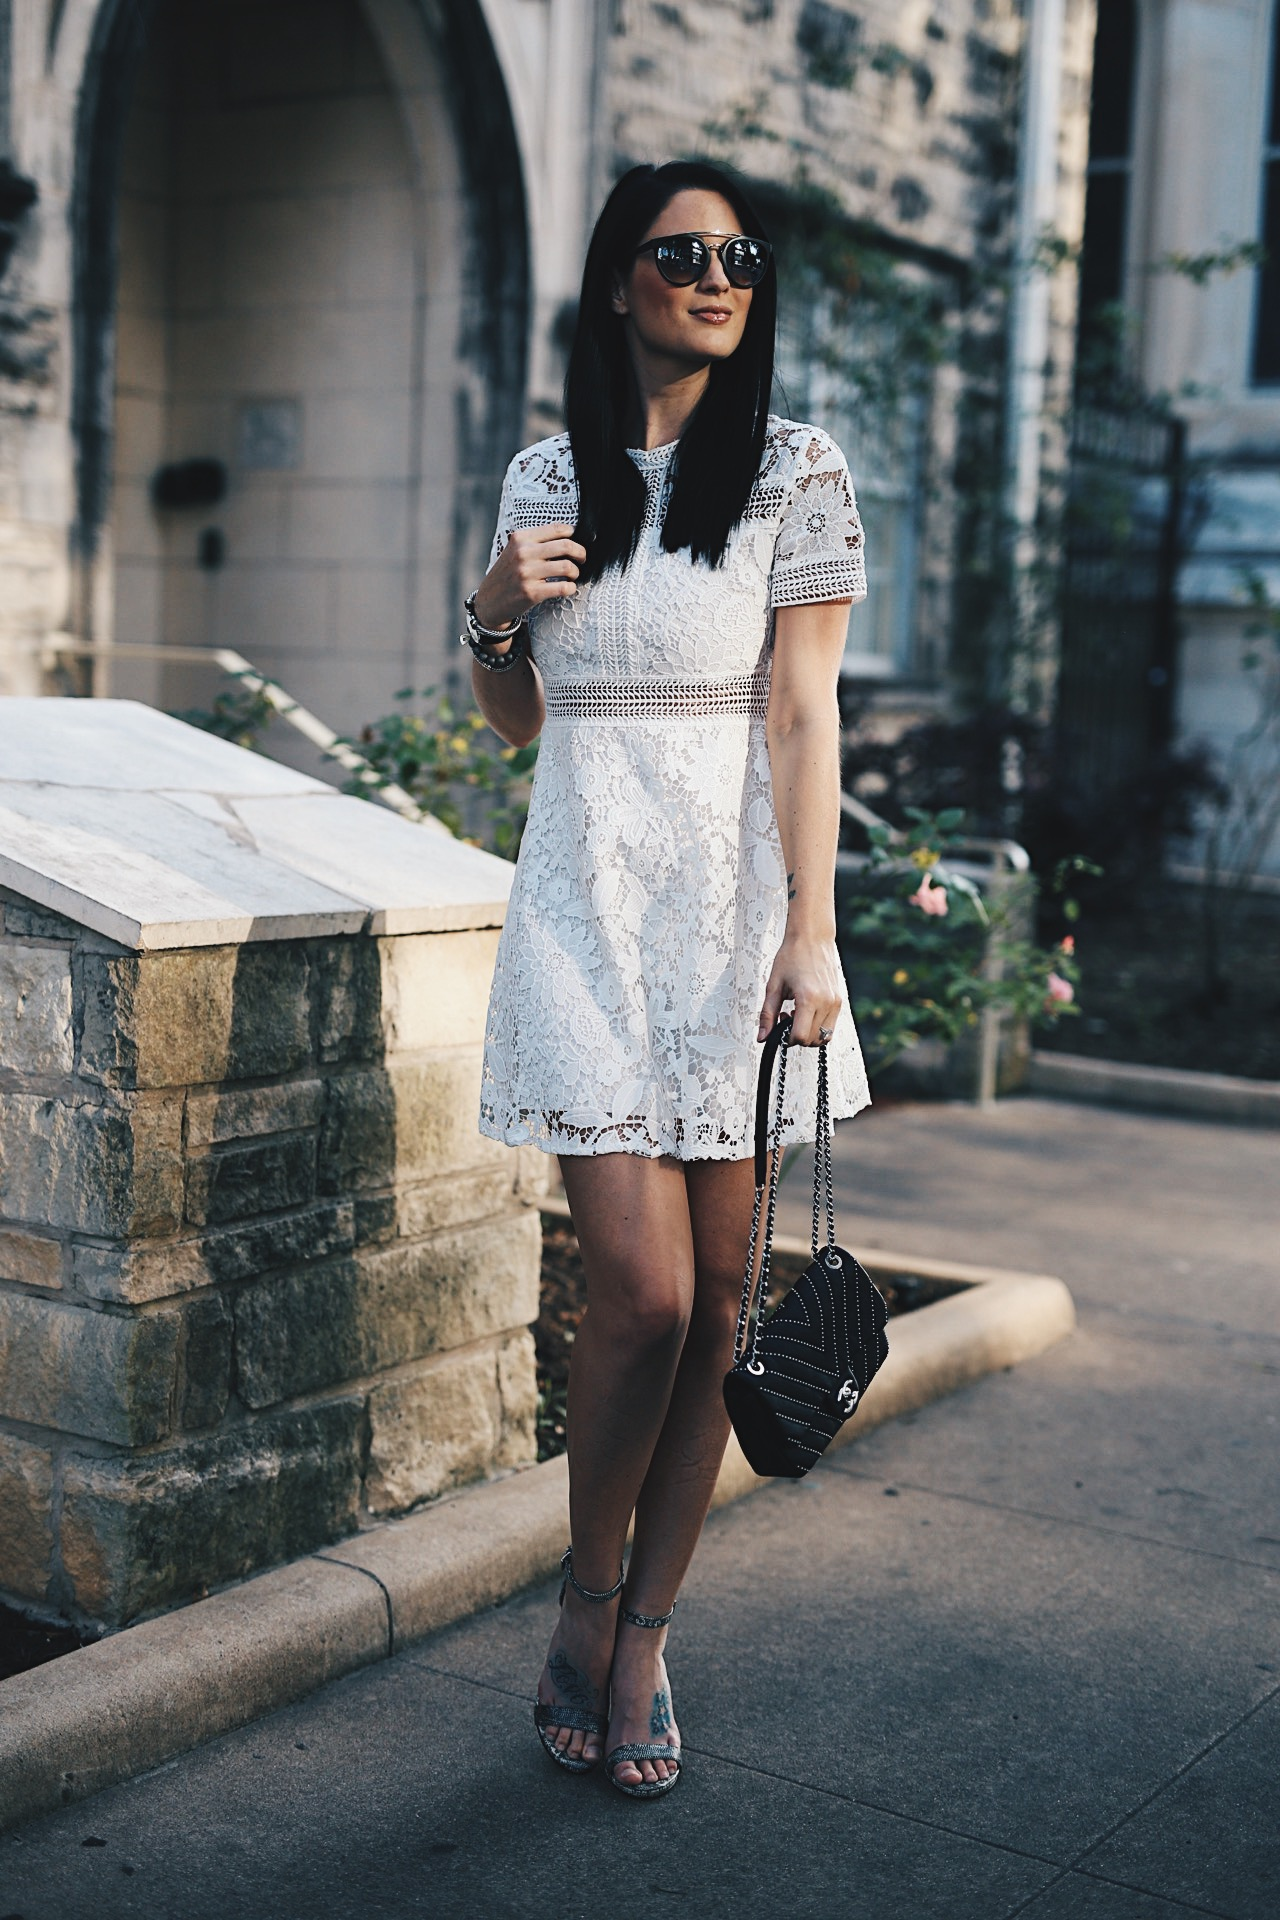 94c79ca623 White Lace Summer Dress with Chicwish - Dressed to Kill